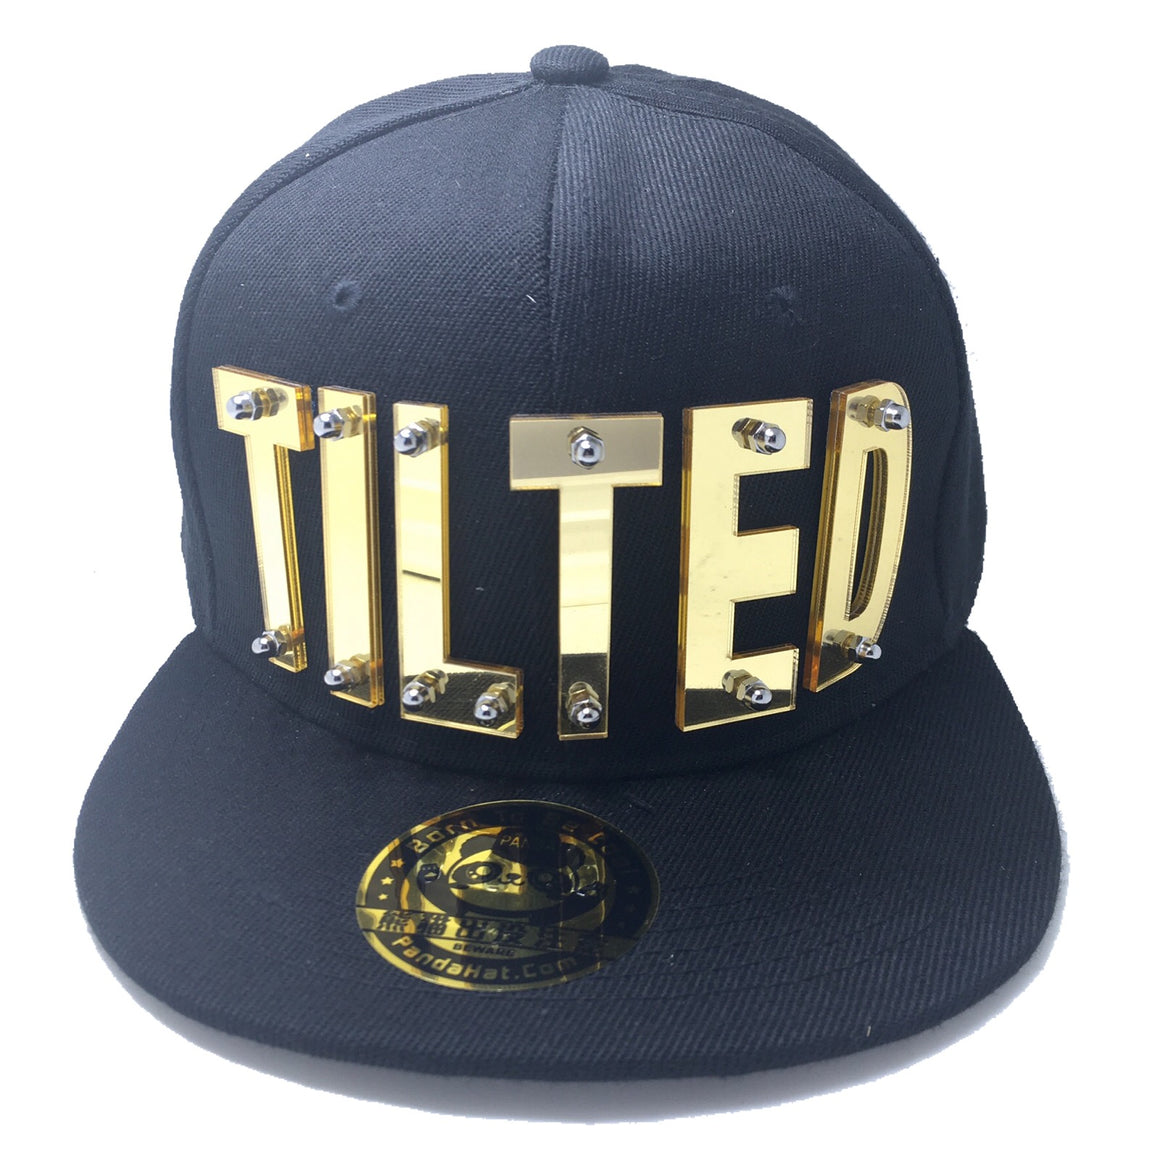 TILTED HAT BLACK